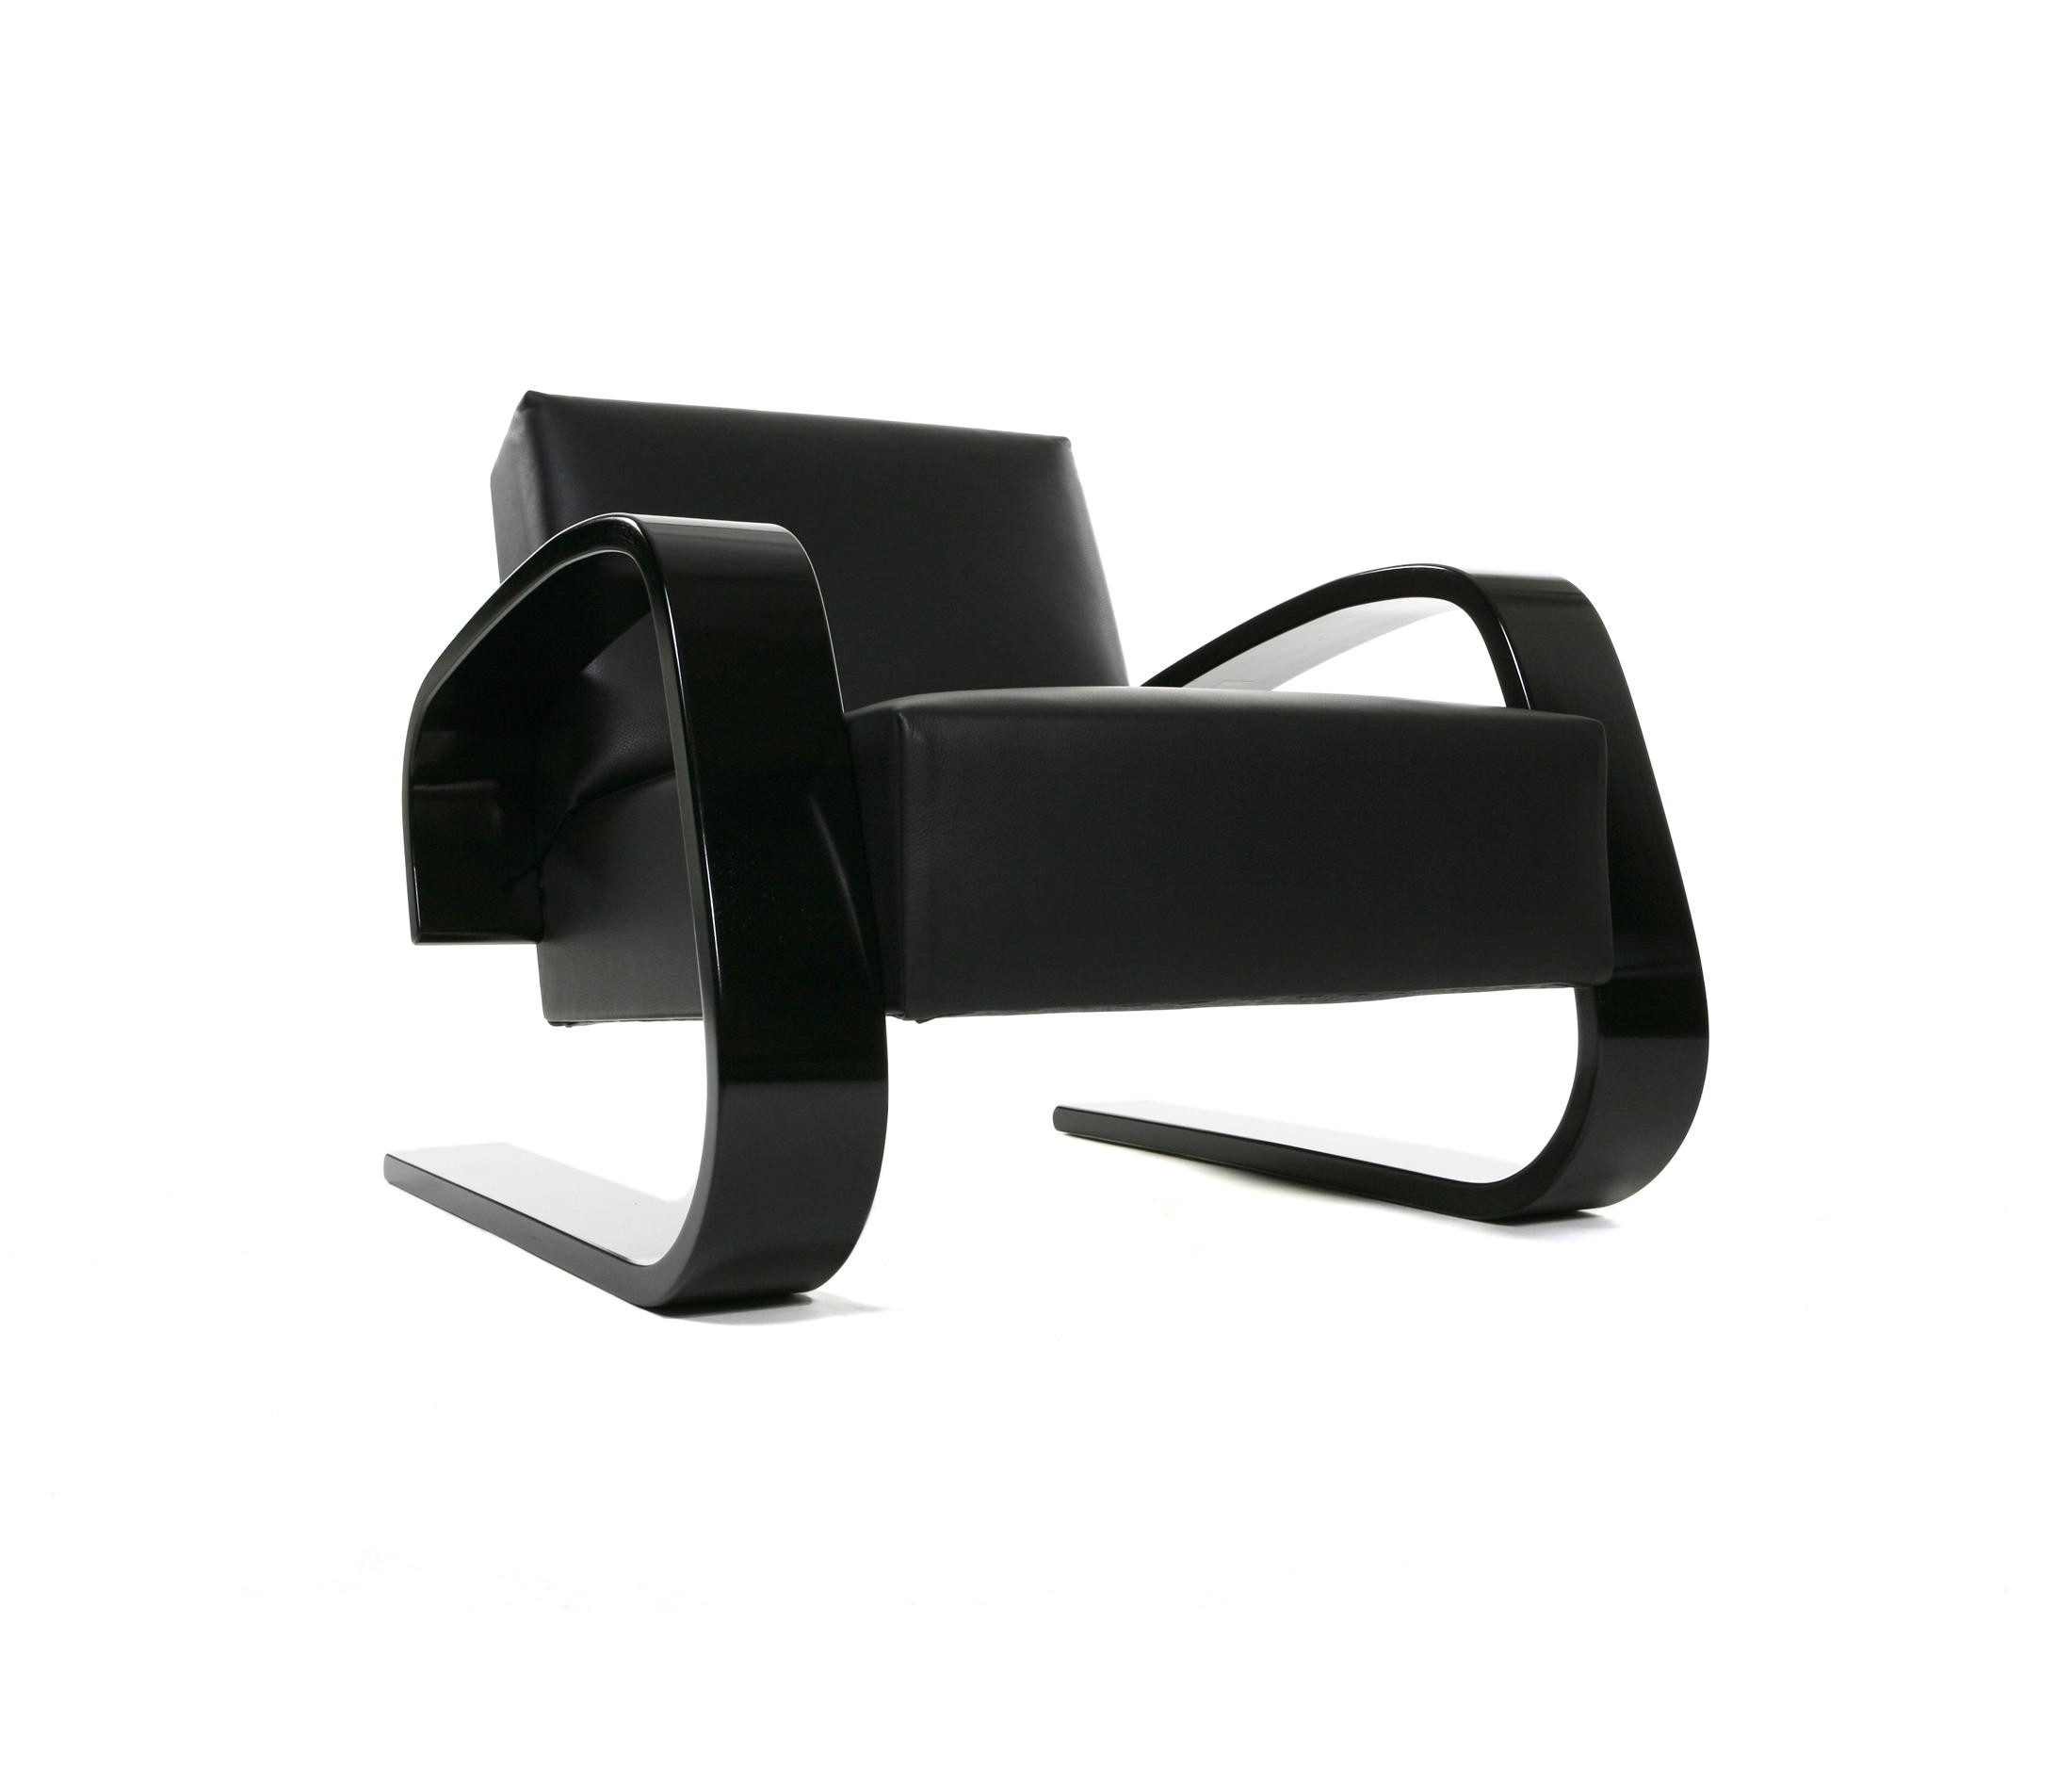 "Armchair 400 � Tank� Lounge Chairs From Artek: ARMCHAIR 400 ""TANK"" - Lounge Chairs From Artek"